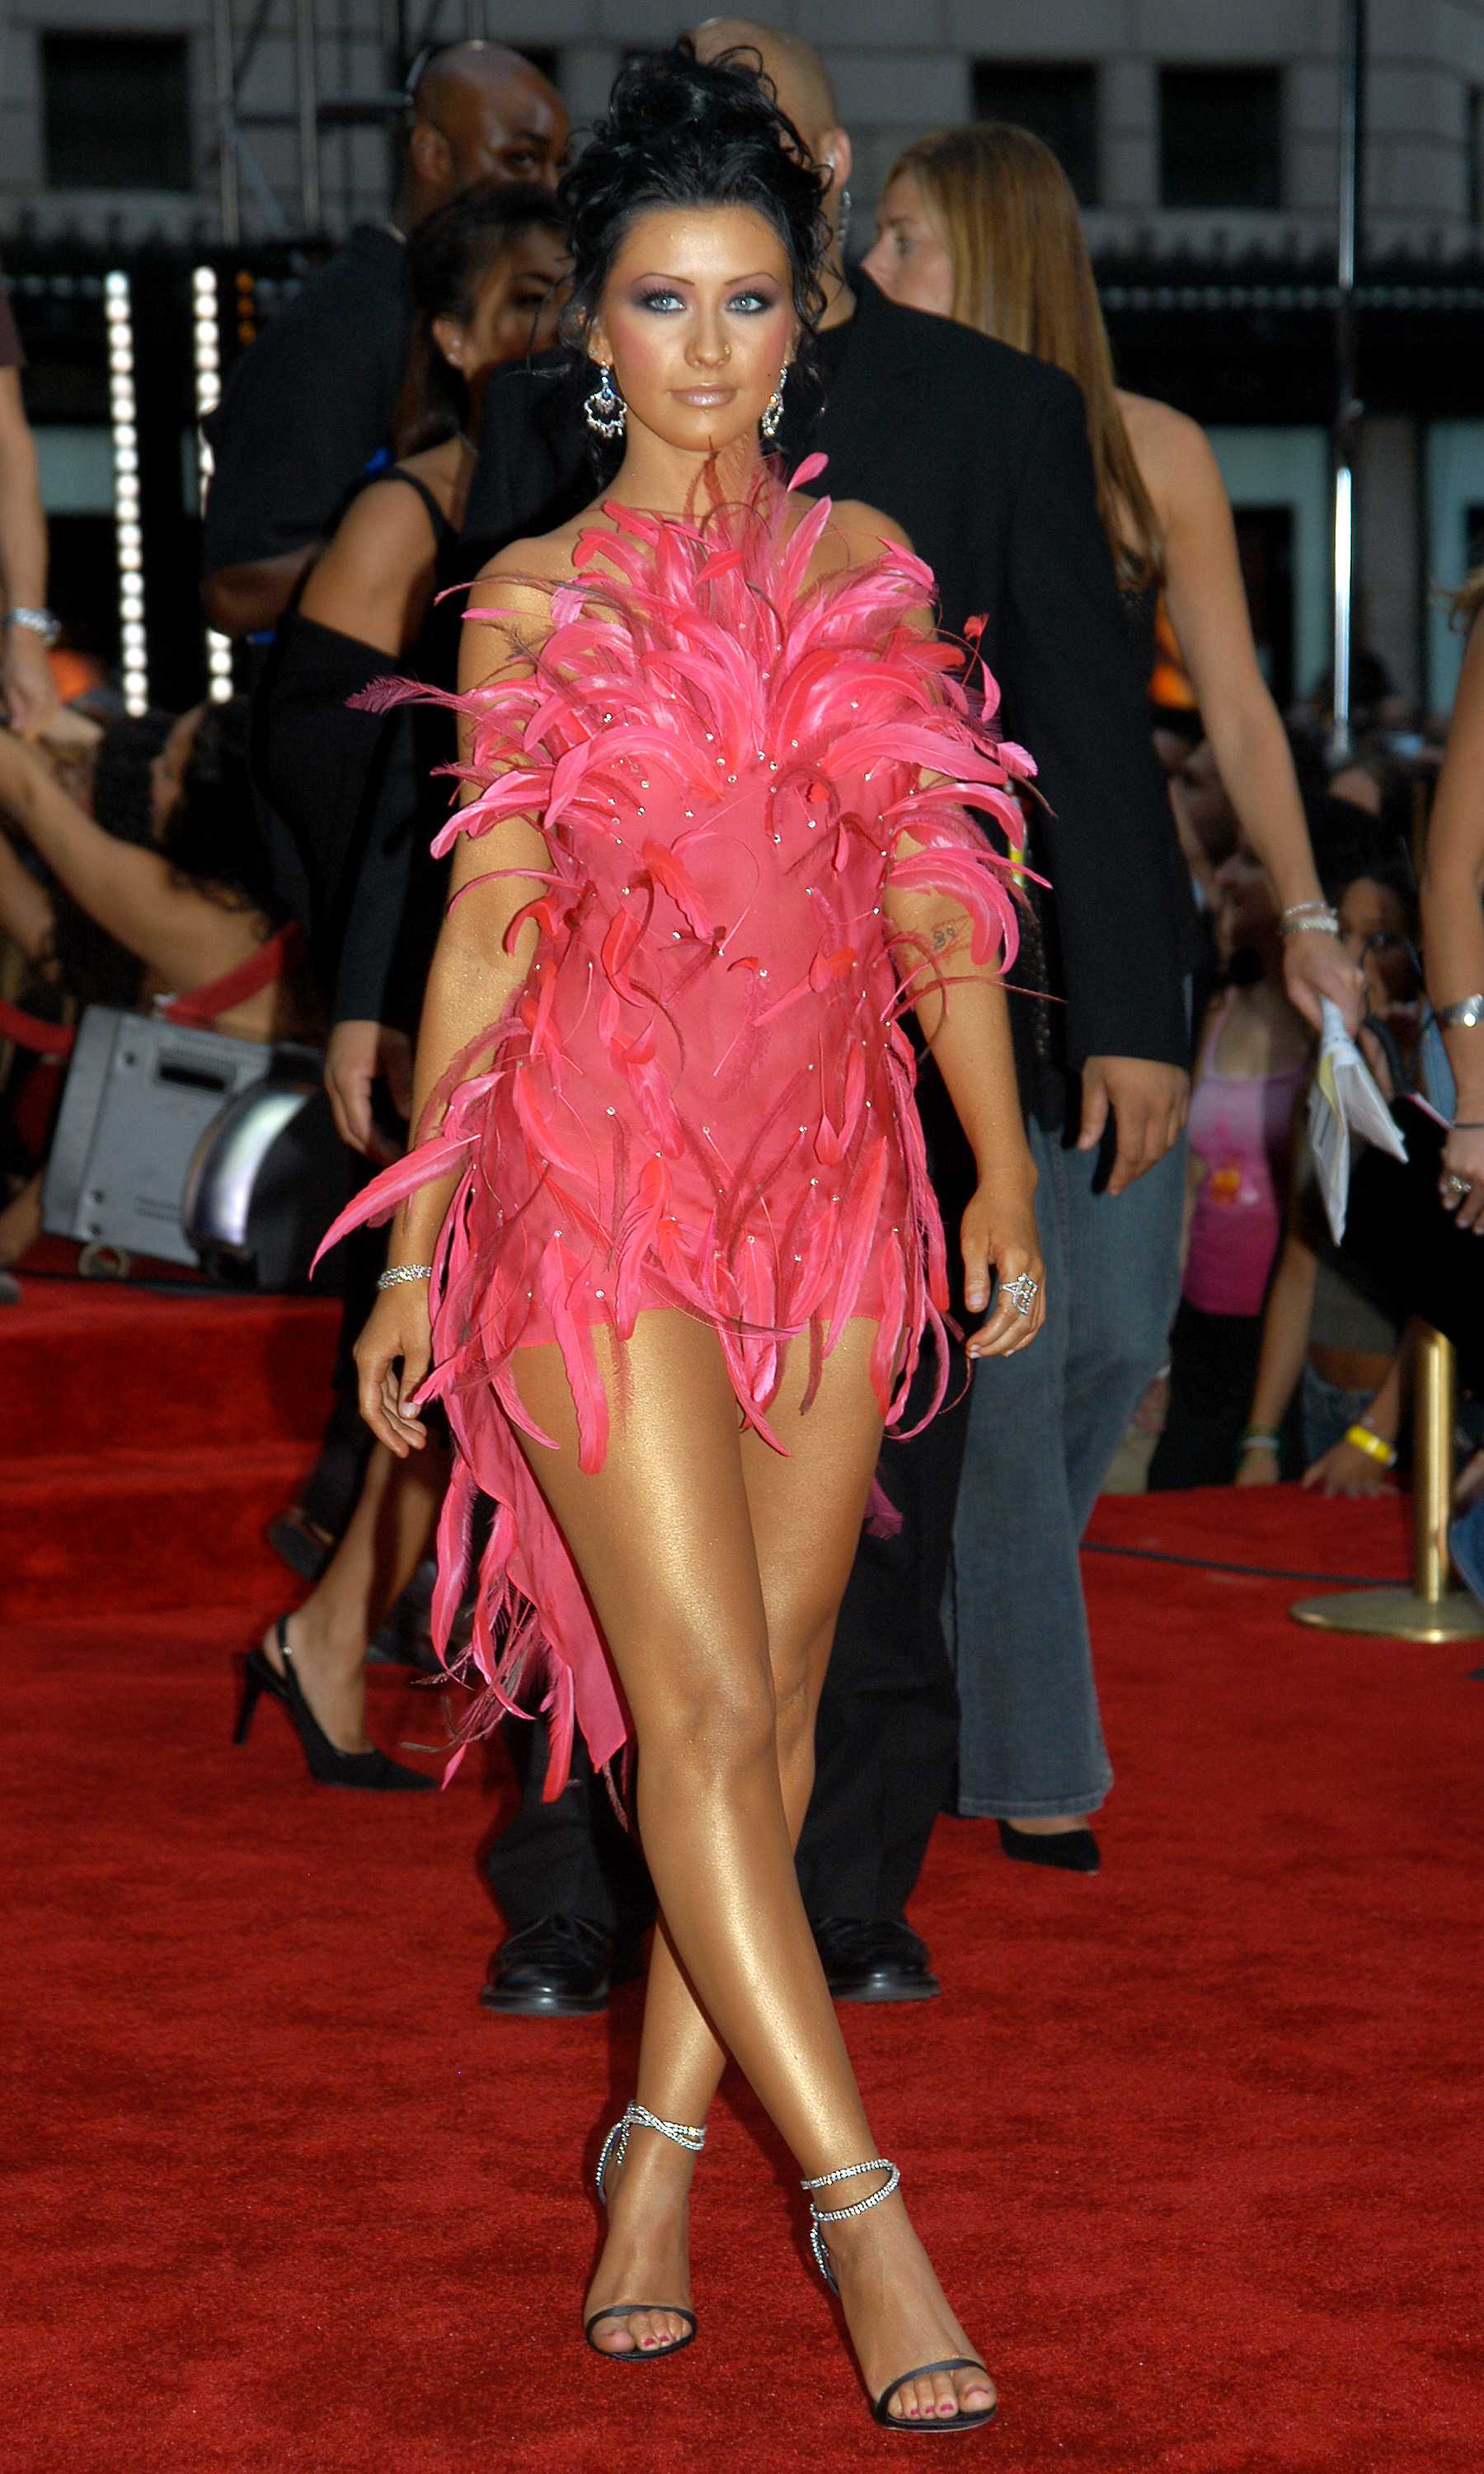 UNITED STATES - AUGUST 28:  Christina Aguilera, wearing a Roberto Cavalli minidress covered with a shock of pink feathers, arrives at Radio City Music Hall for the 2003 MTV Video Music Awards. She performed at the event.  (Photo by Richard Corkery/NY Daily News Archive via Getty Images)